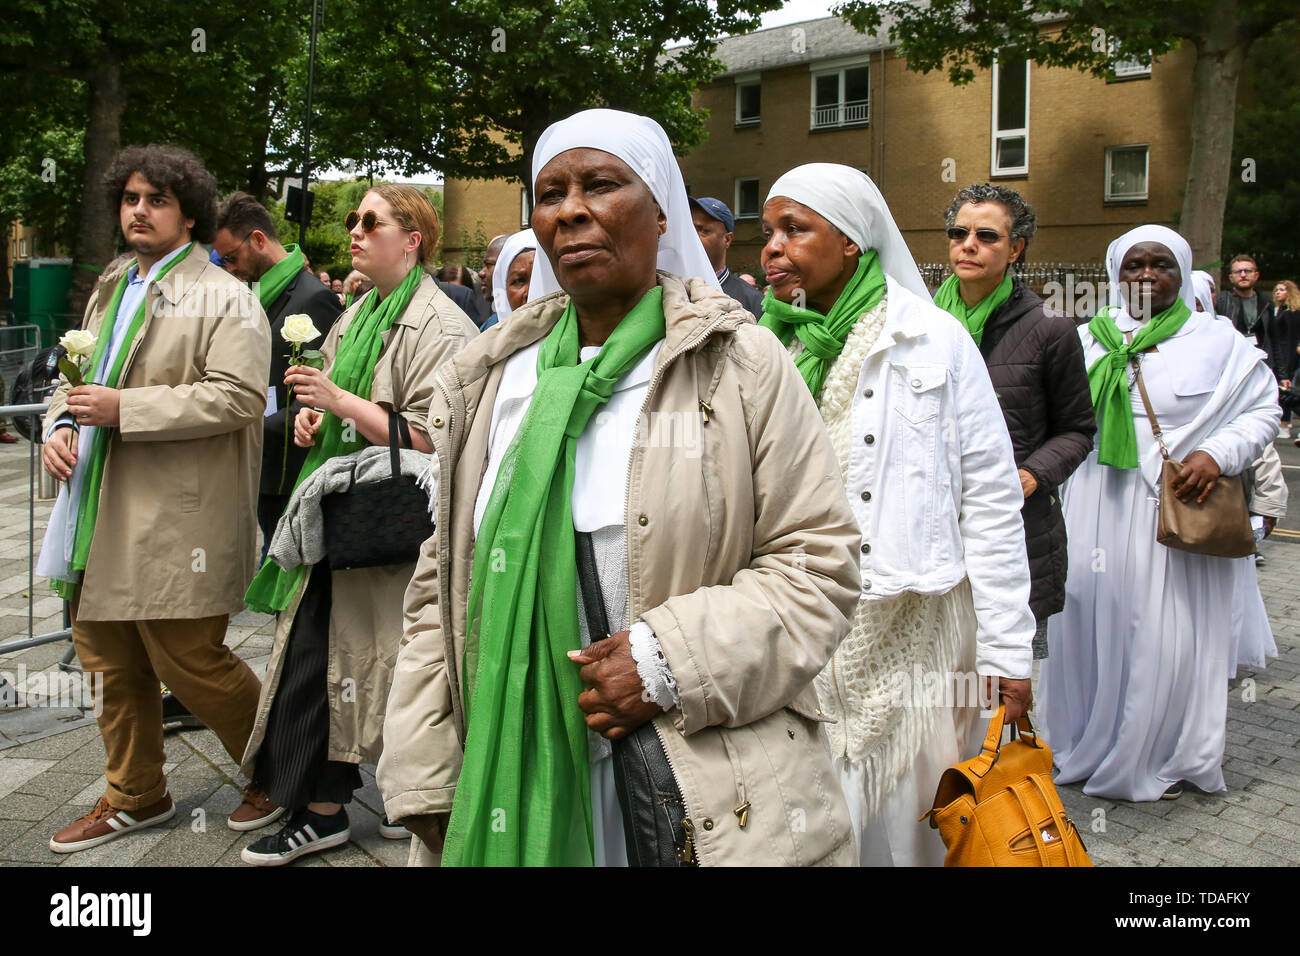 North Kensington, West London. UK 14 Jun 2019 - Nuns take part in a silent procession with the Grenfell Tower in the background to commemorate the second anniversary of the Grenfell Tower fire. On 14 June 2017, just before 1:00Êam a fire broke out in the kitchen of the fourth floor flat at the 24-storey residential tower block in North Kensington, West London, which took the lives of 72 people. More than 70 others were injured and 223 people escaped.  Credit: Dinendra Haria/Alamy Live News - Stock Image